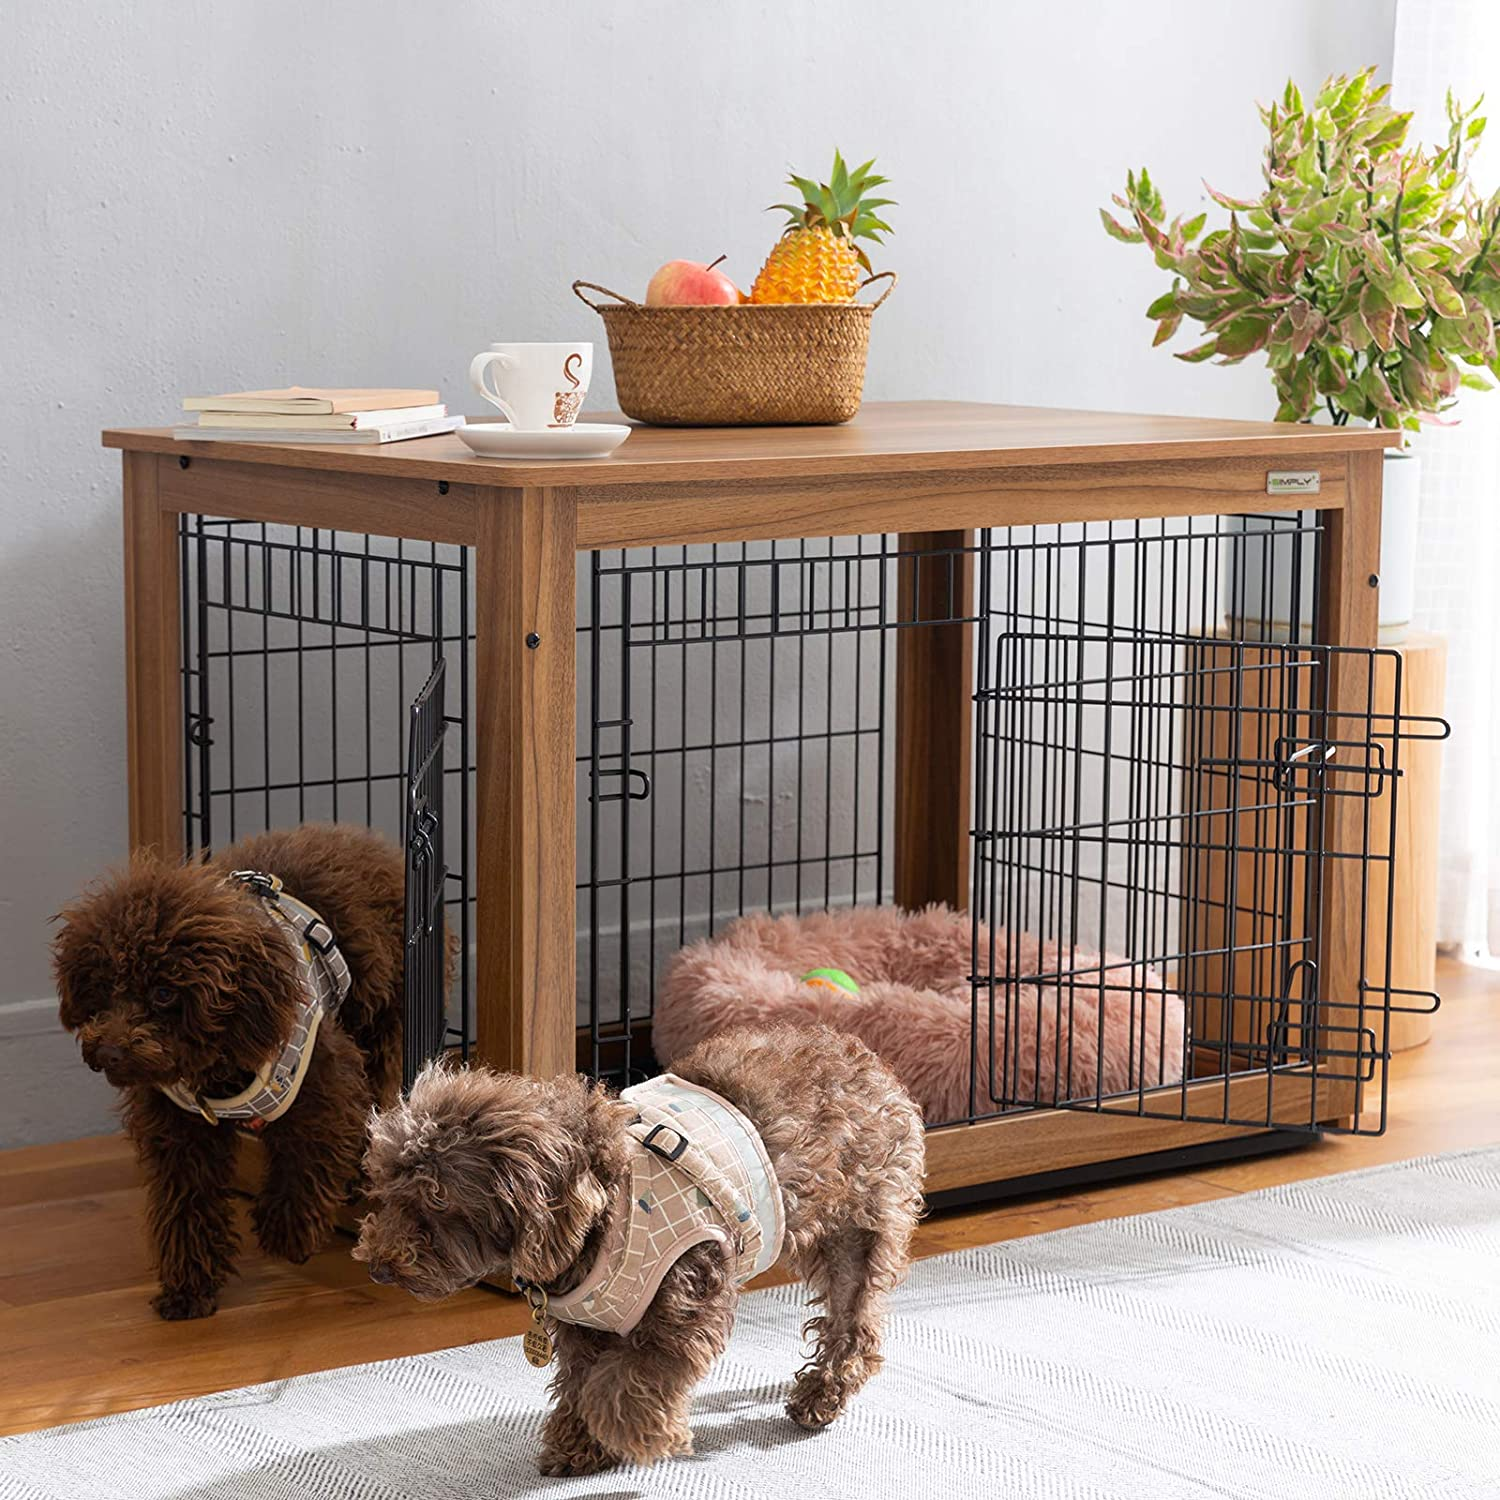 SIMPLY+ Wooden Dog Crate with Slide Tray, Wooden Wire Dog Kennels with Double Doors, Detachable Top Cover Indoor Pet Crate Side Table,Chew-Proof (37